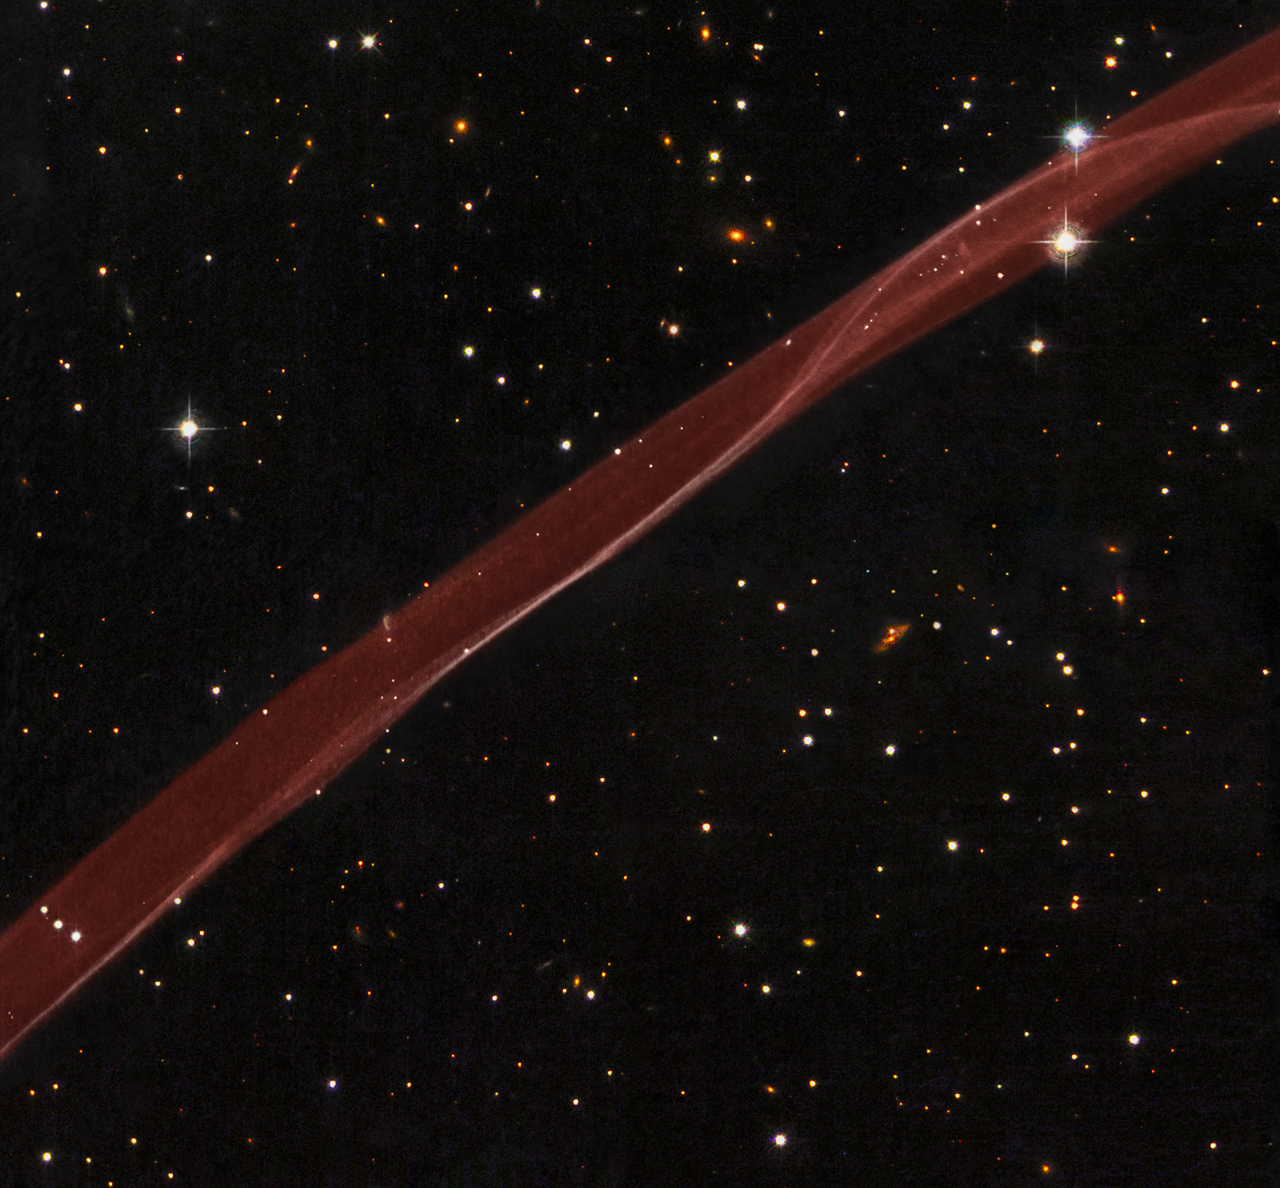 Red Stripe of SN 1006 Supernova Remnant Reminiscent of Fireworks